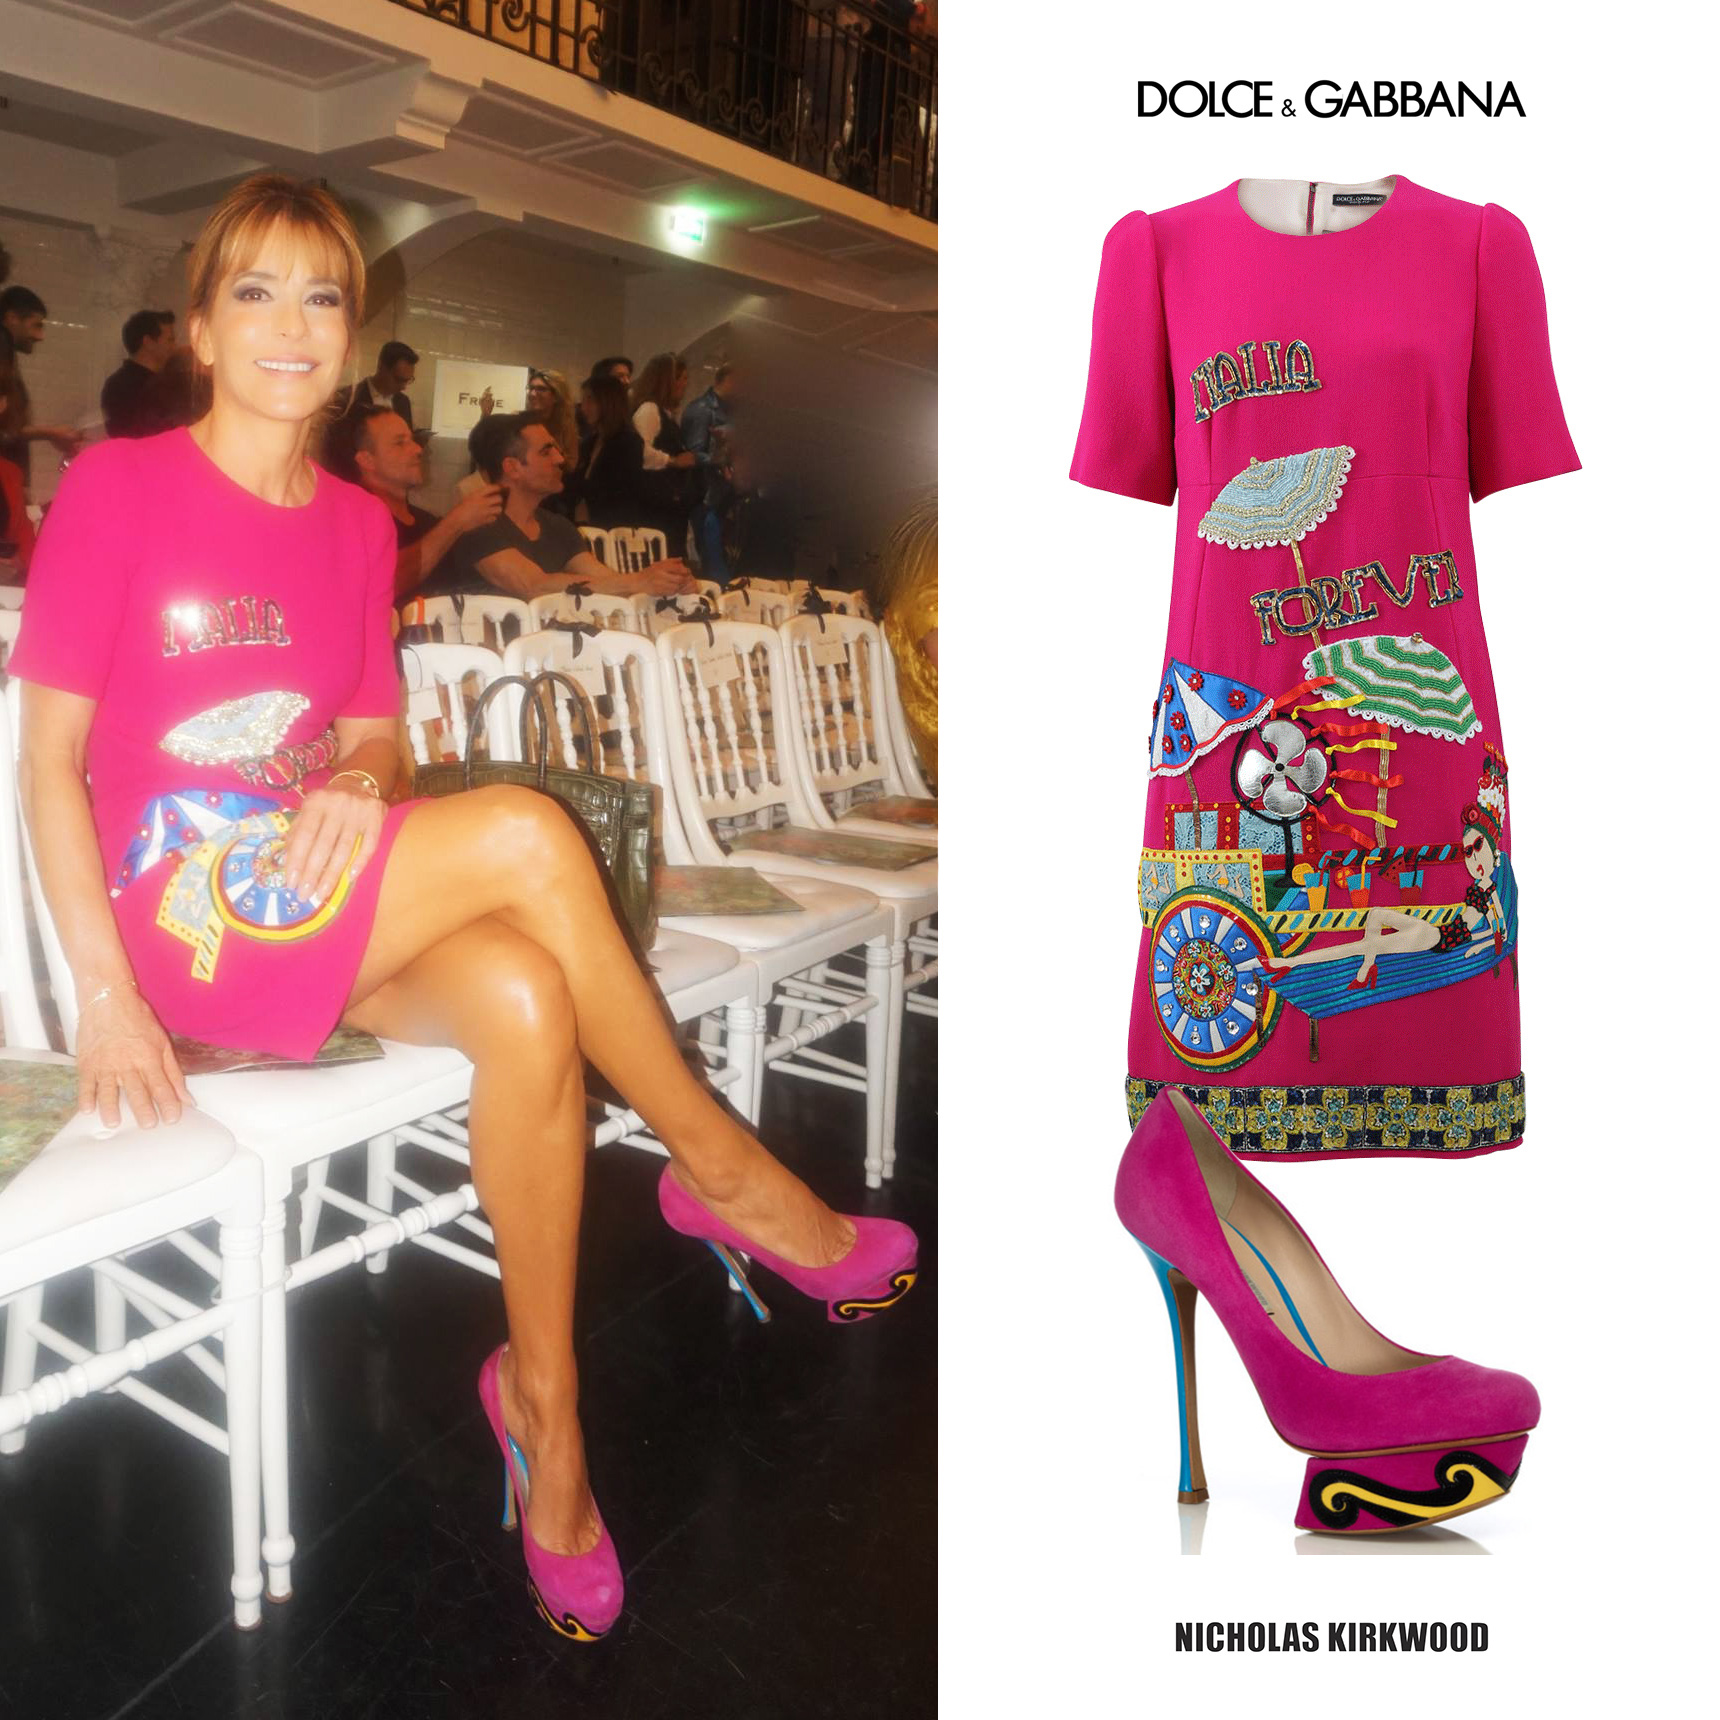 Patricia_Darenberg_Della_Giovampaola_Jean_Paul_Gaultier_Front_Row_Dolce_Gabbana_Pink_Embroidered_Dress_Nicholas_Kirkwood_Pre_Fall_2013_Pink_Platform_Pumps.jpg